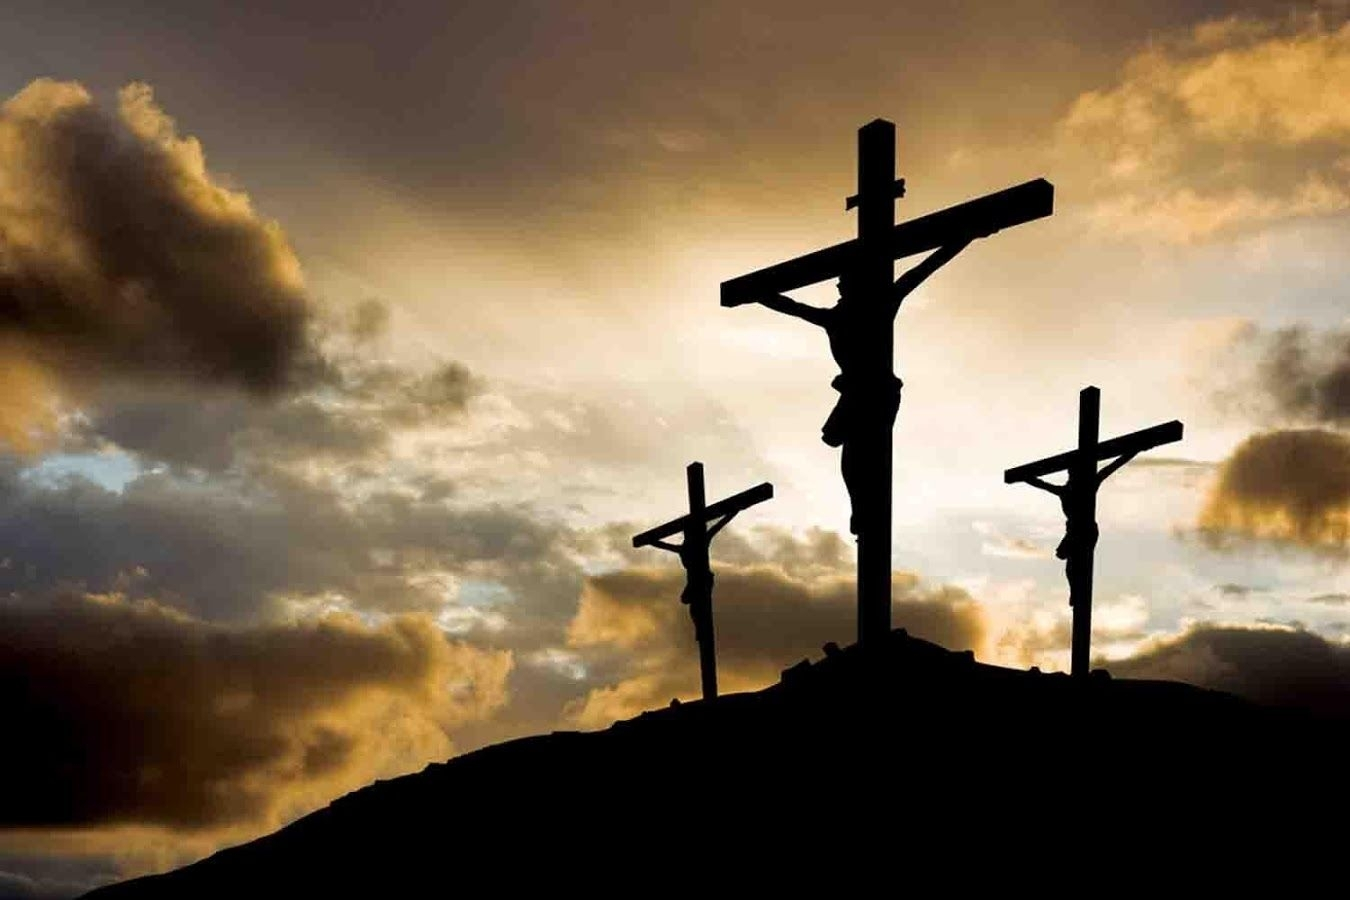 Title : religious cross wallpaper and backgrounds hd | imac wallpaper. Dimension : 1350 x 900. File Type : JPG/JPEG